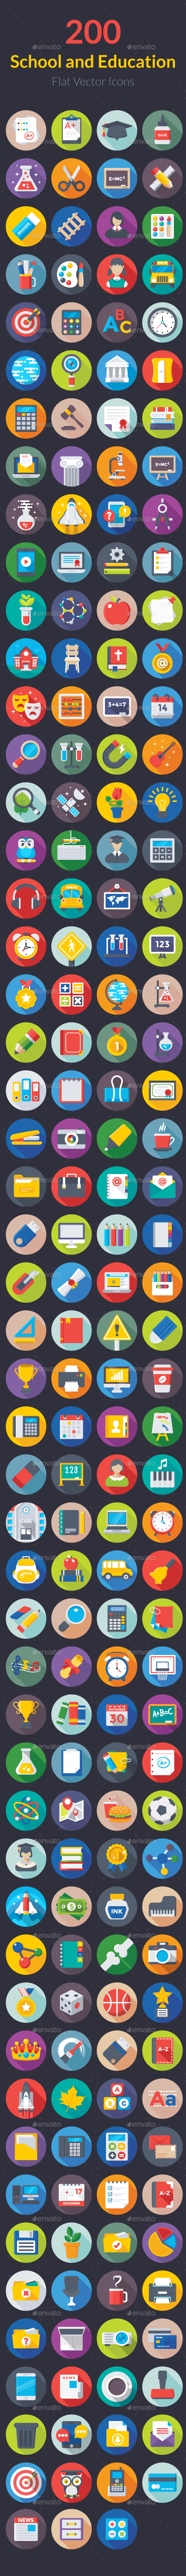 200 Flat School and Education Icons - Icons